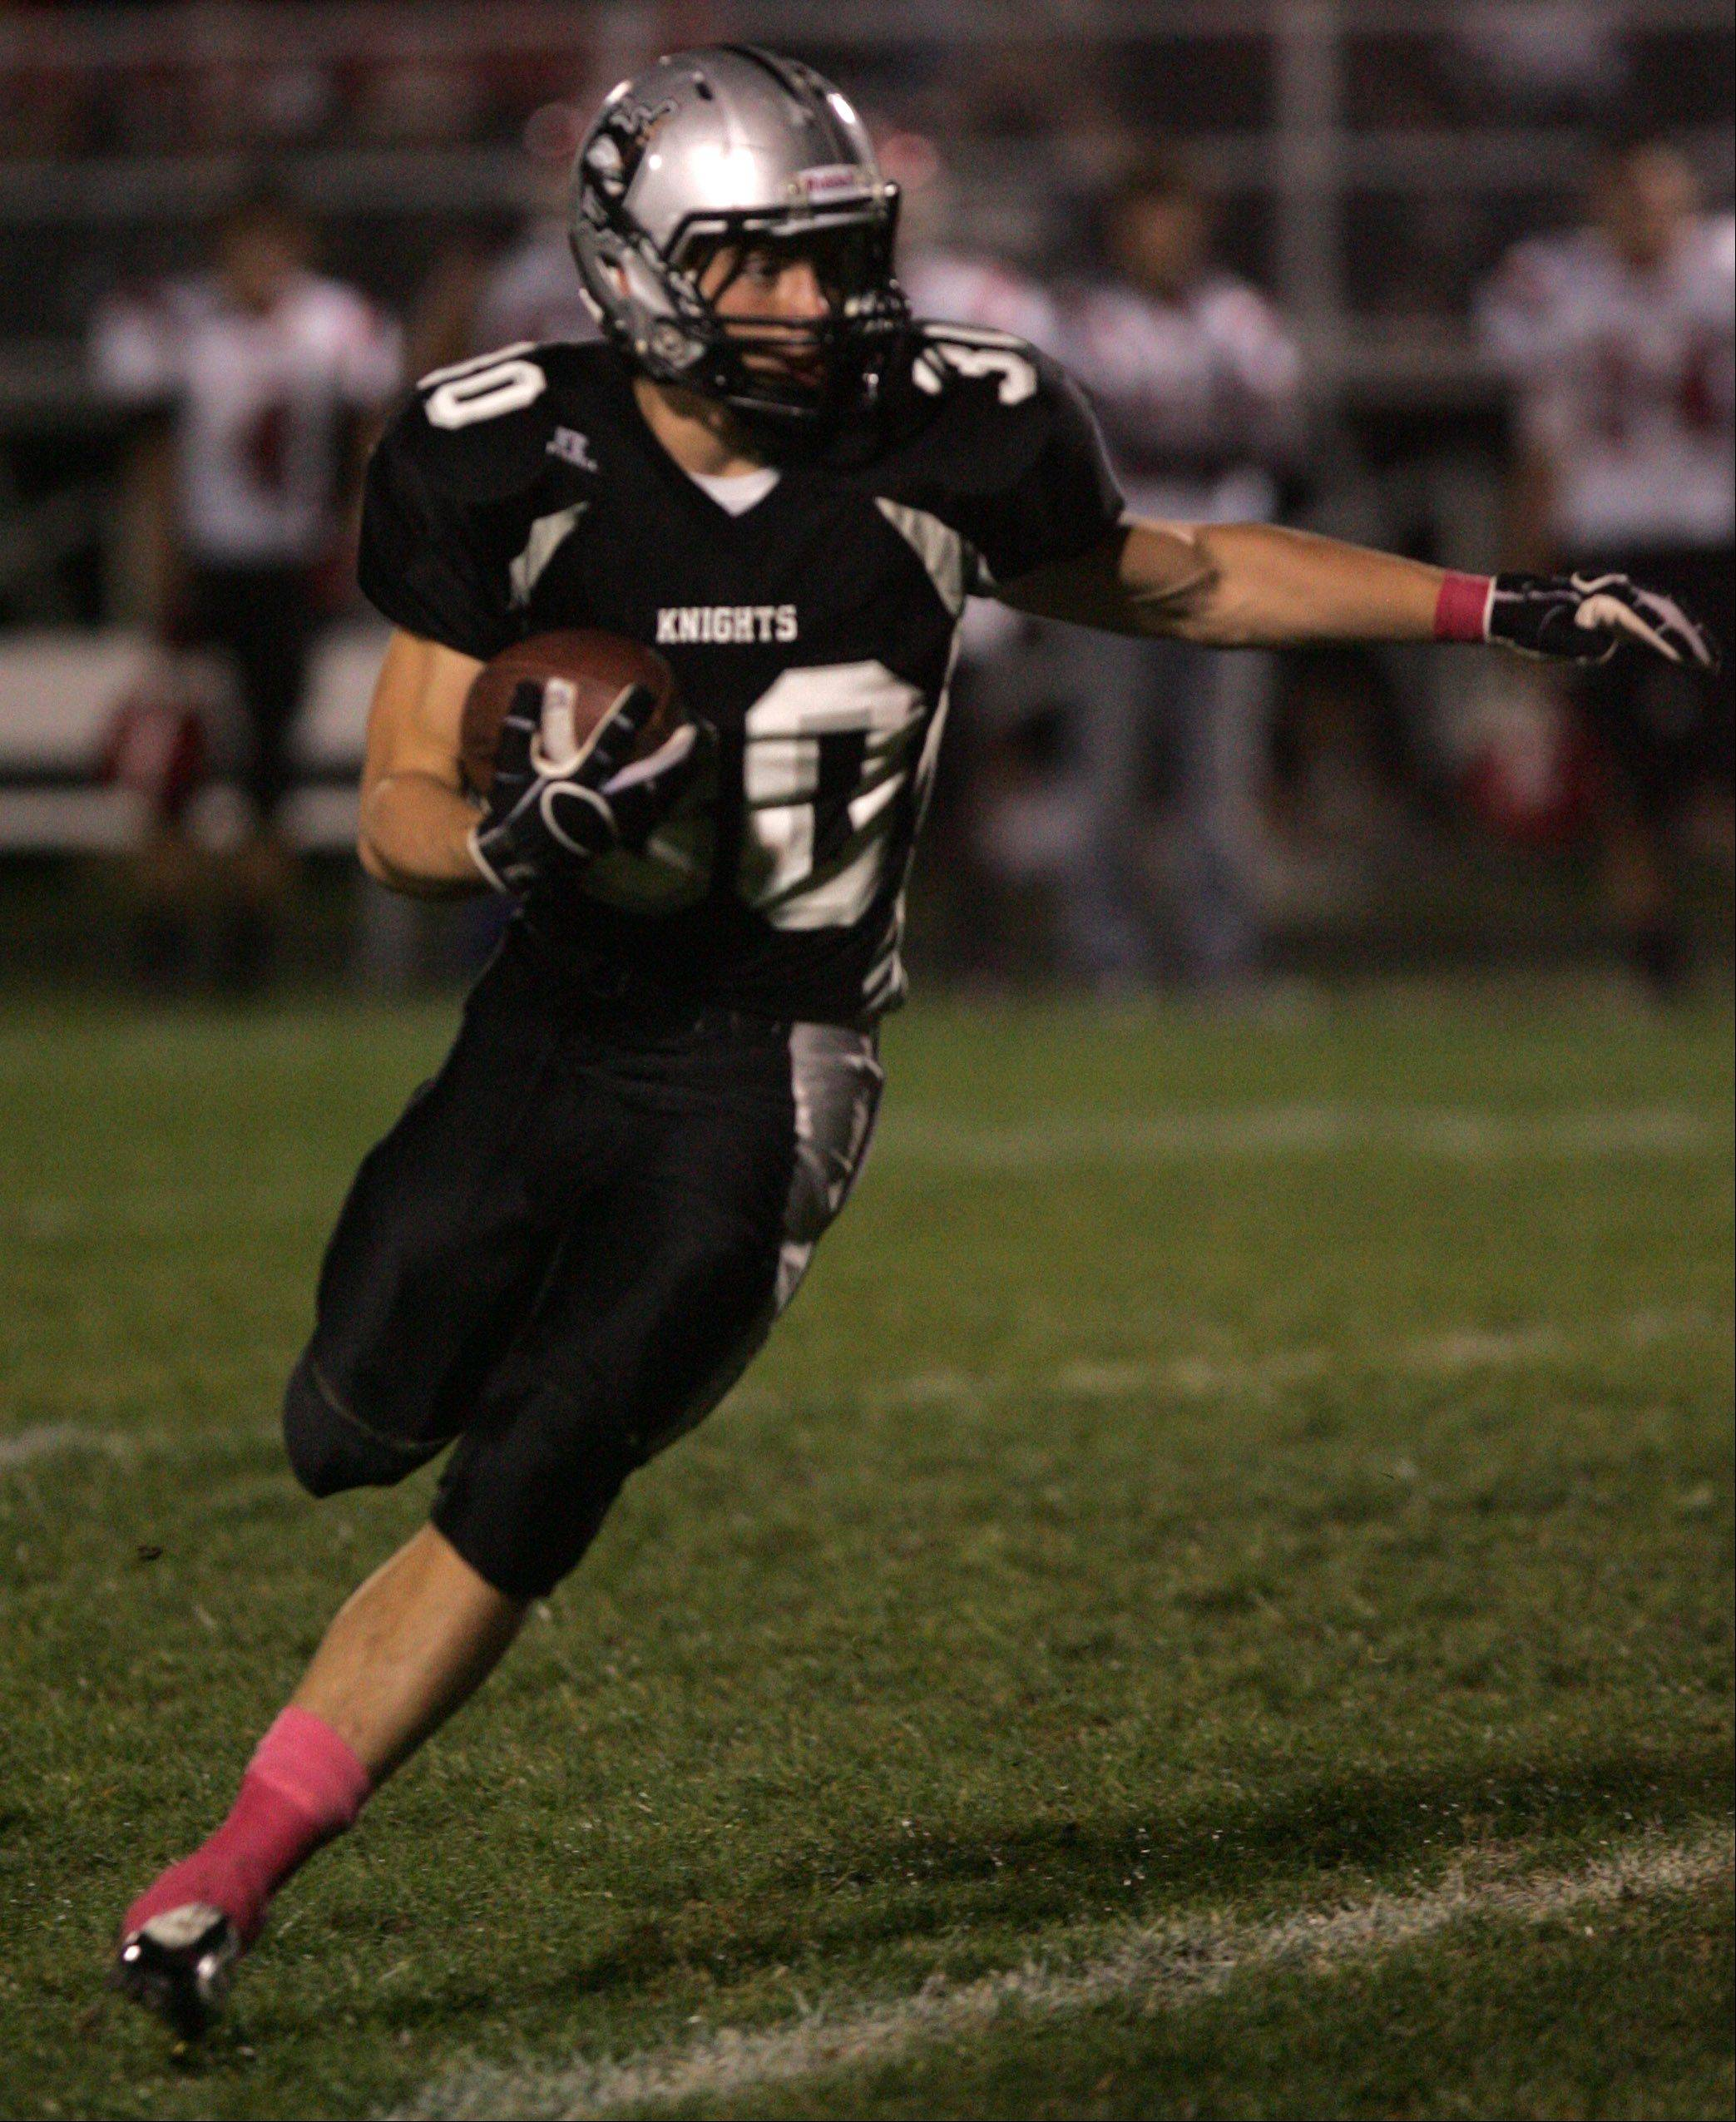 Kaneland's Jesse Balluff runs the ball against Yorkville during their game Friday in Maple Park.